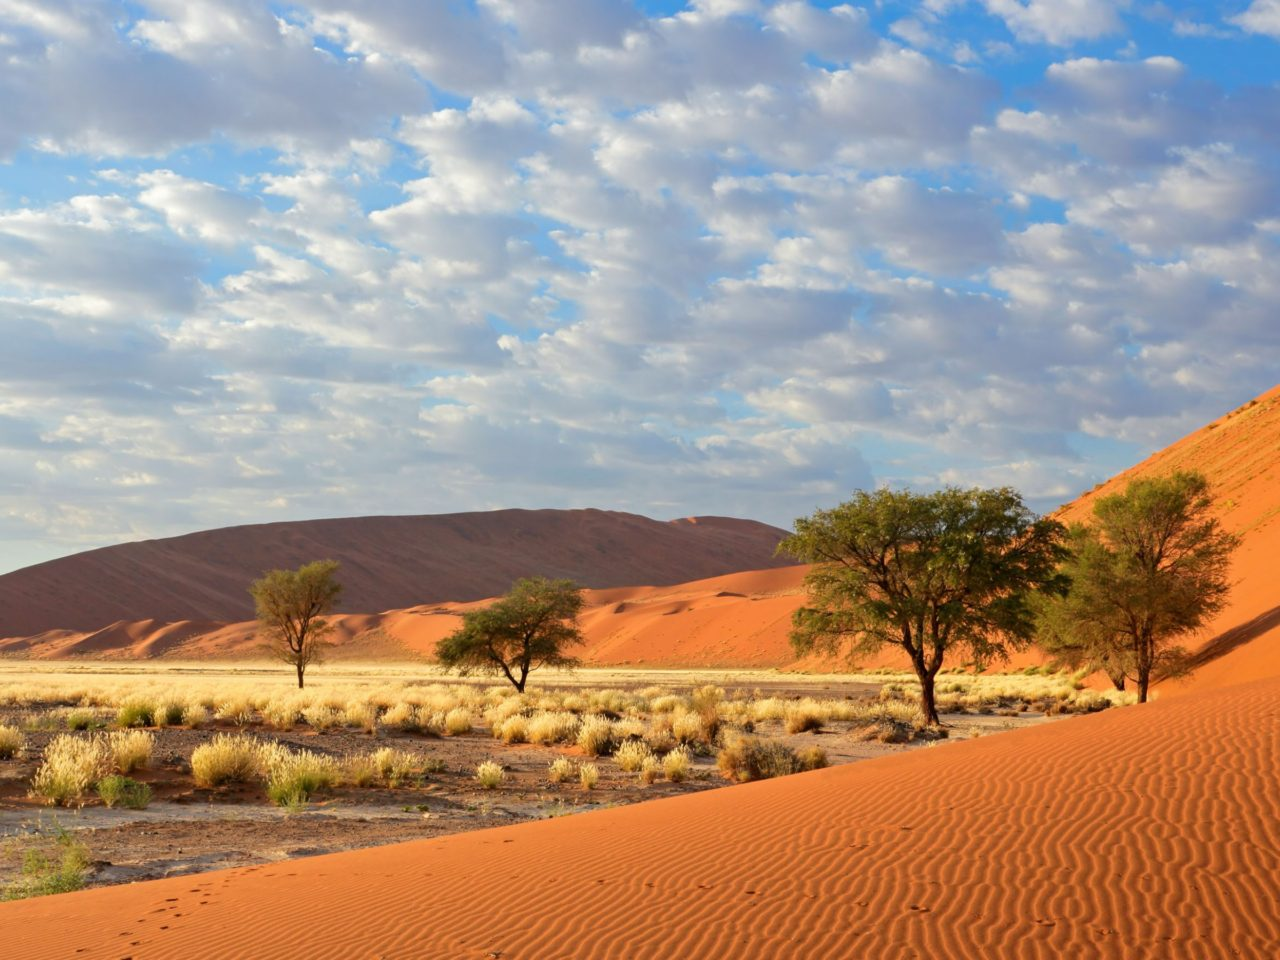 Fall Wallpapers For Tablet Sossusvlei Namib Naukluft National Park Namibia 1800x2880